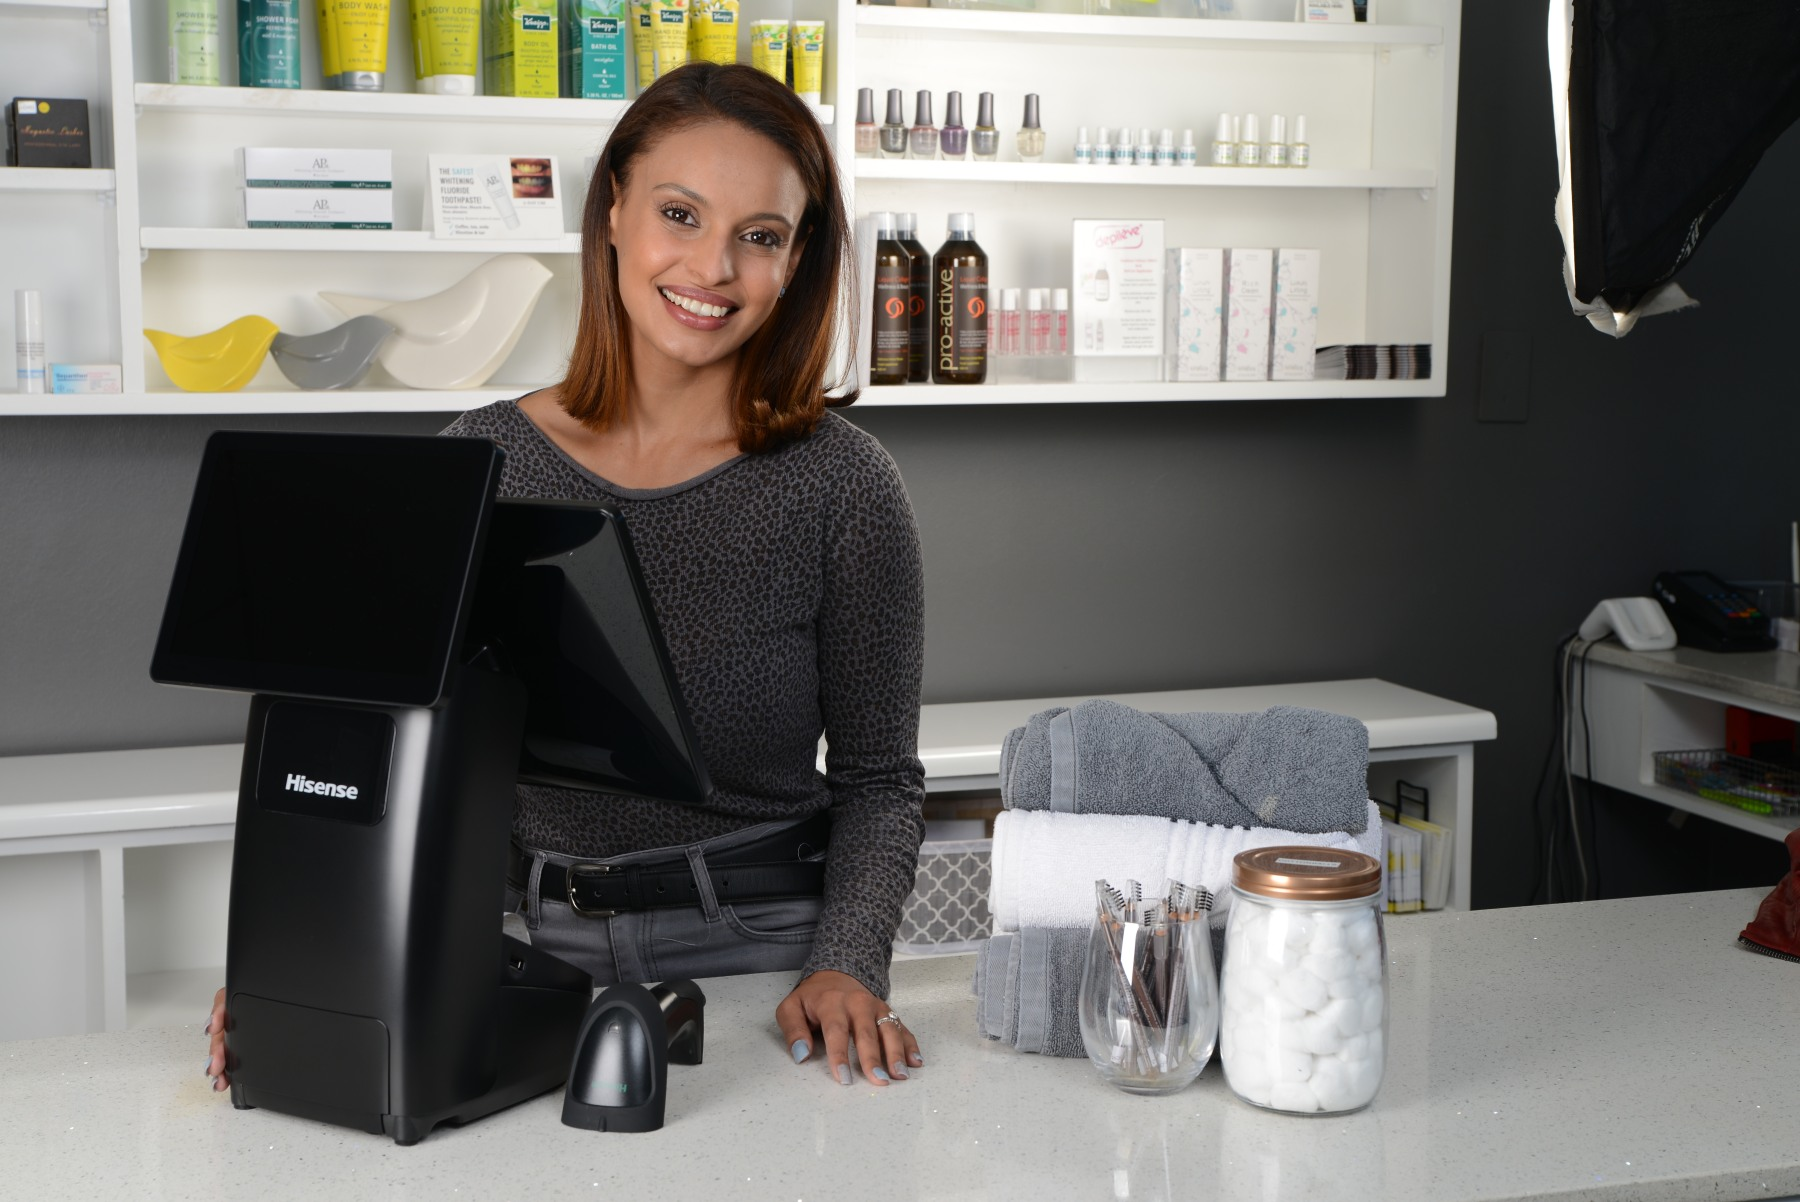 Hisense point of sale touch computer